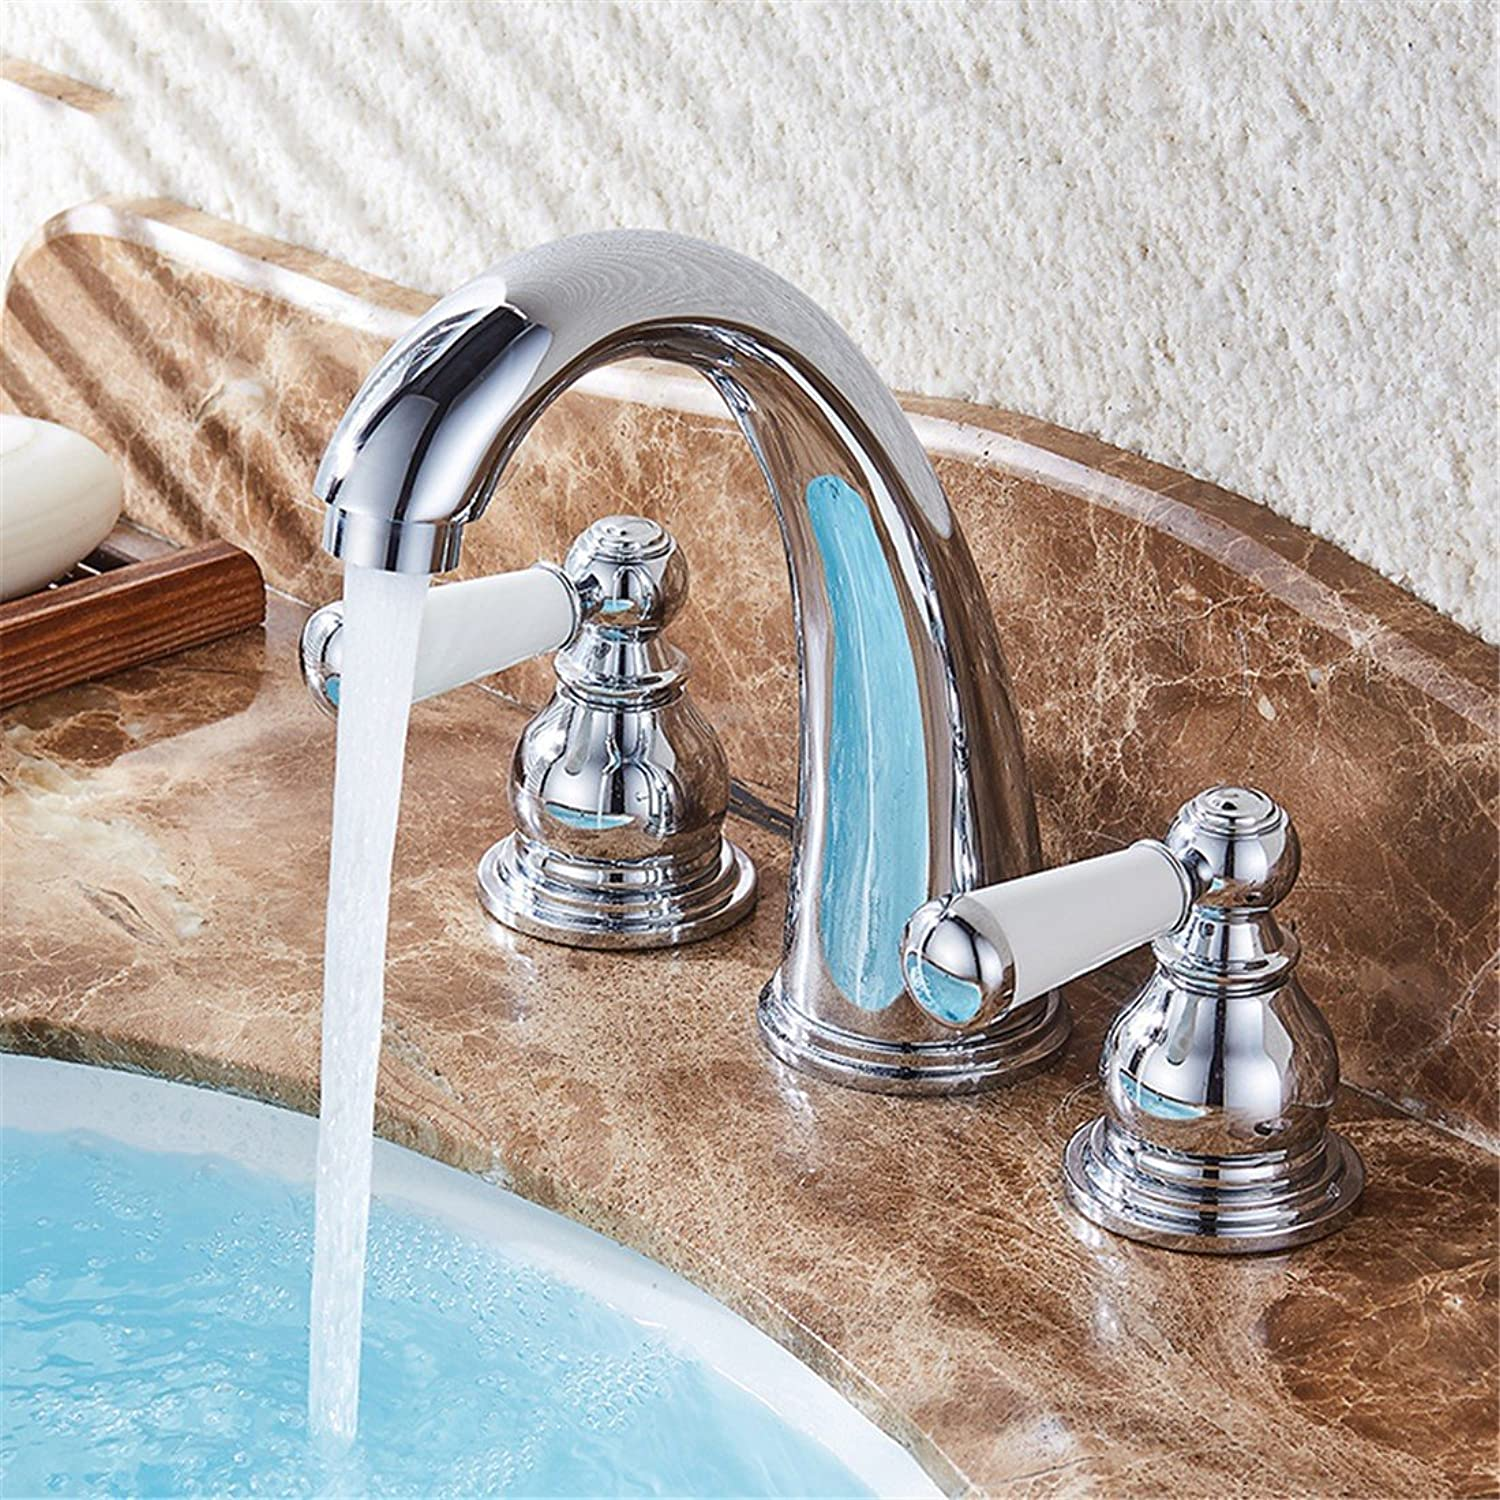 LHbox Basin Mixer Tap Bathroom Sink Faucet The lion-lam continental basin faucet hot and cold full copper washbasin vanity bench lowered basin faucet three hole